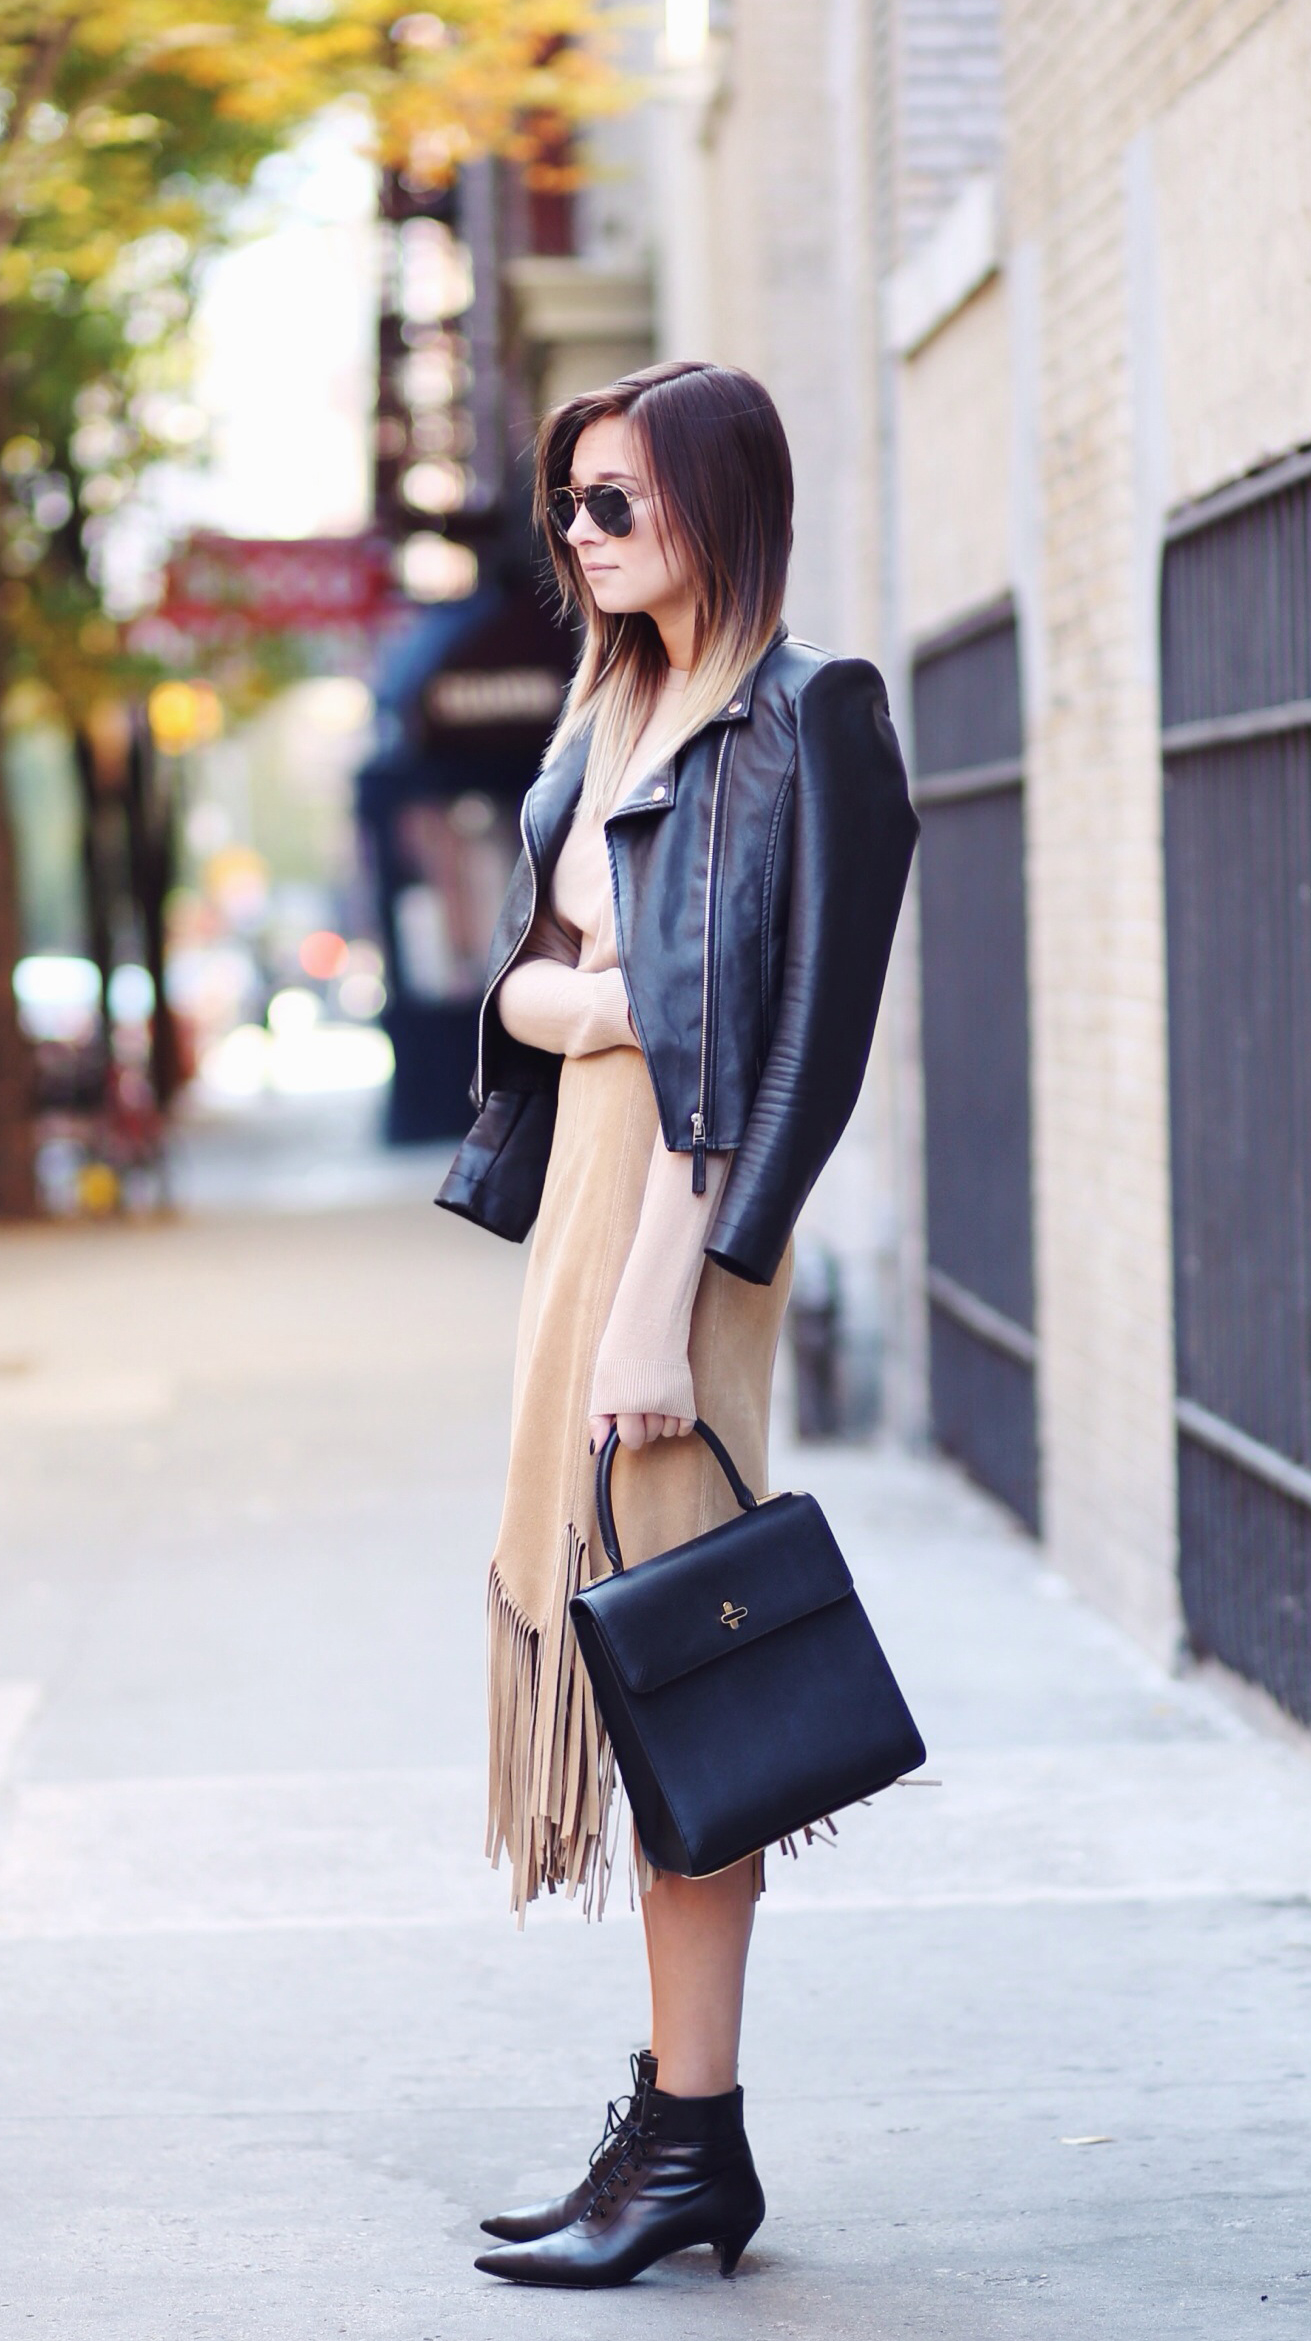 Fringe Fashion Trend: Danielle Bernstein is wearing a fringed suede skirt from Thrift Wares